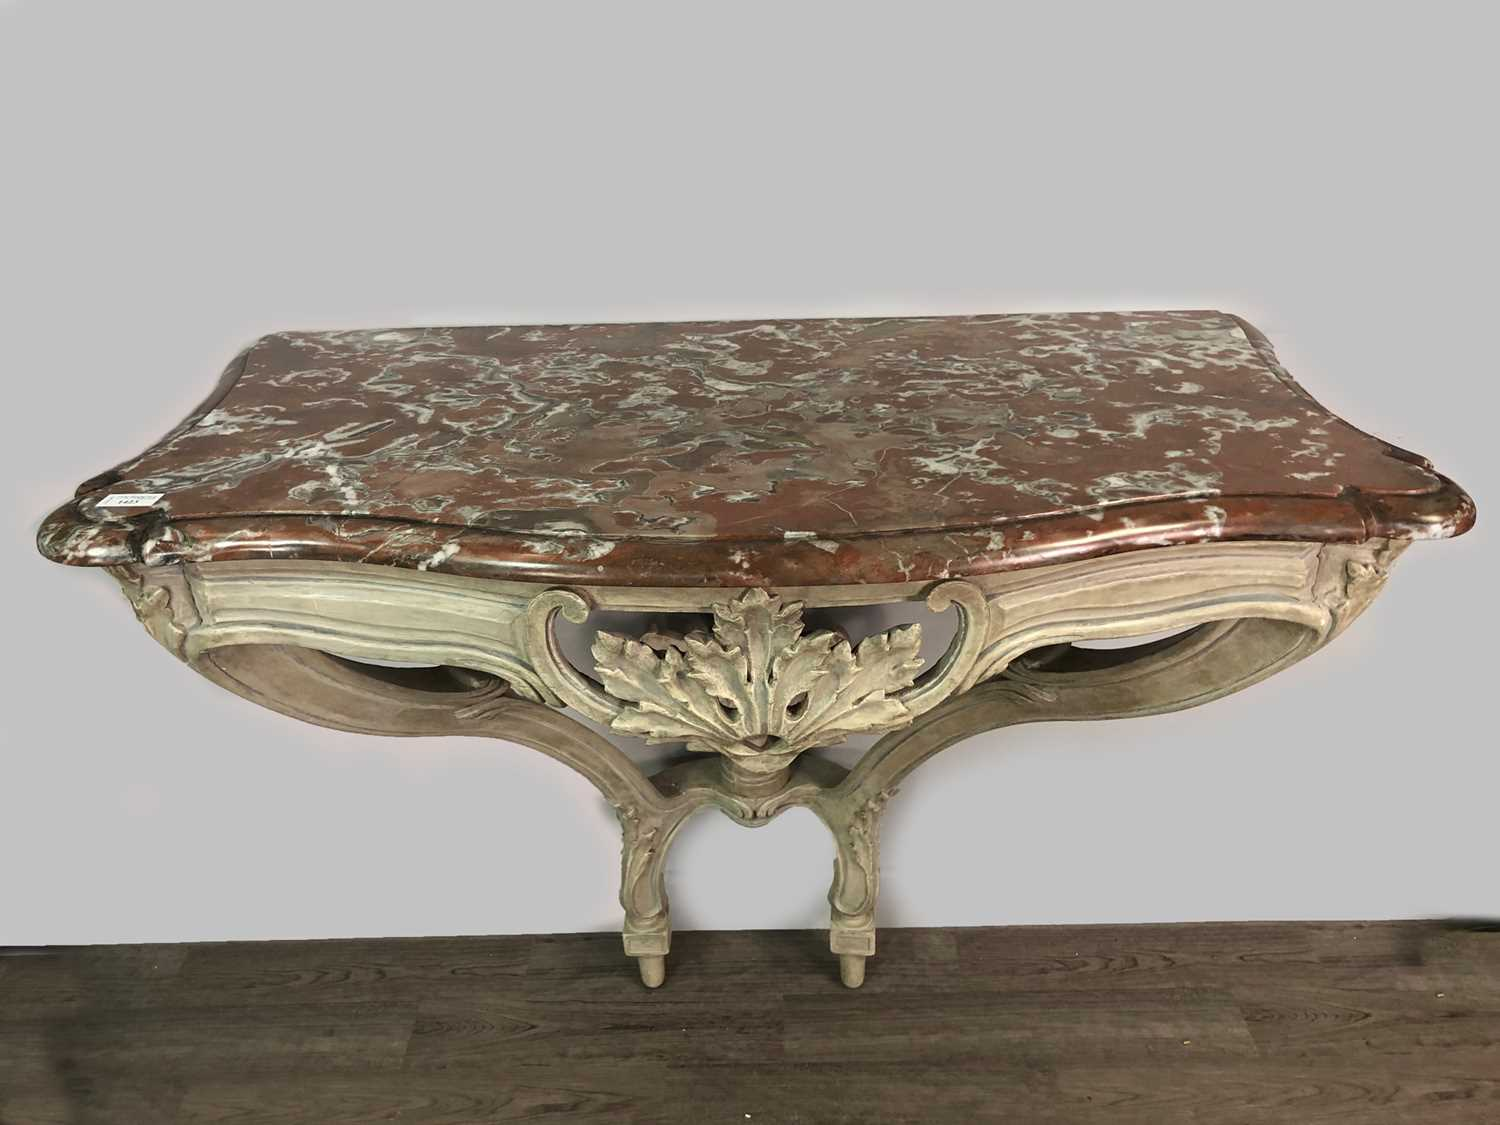 Lot 1423 - A FRENCH GREY PAINTED CONSOLE TABLE OF LOUIS XV DESIGN